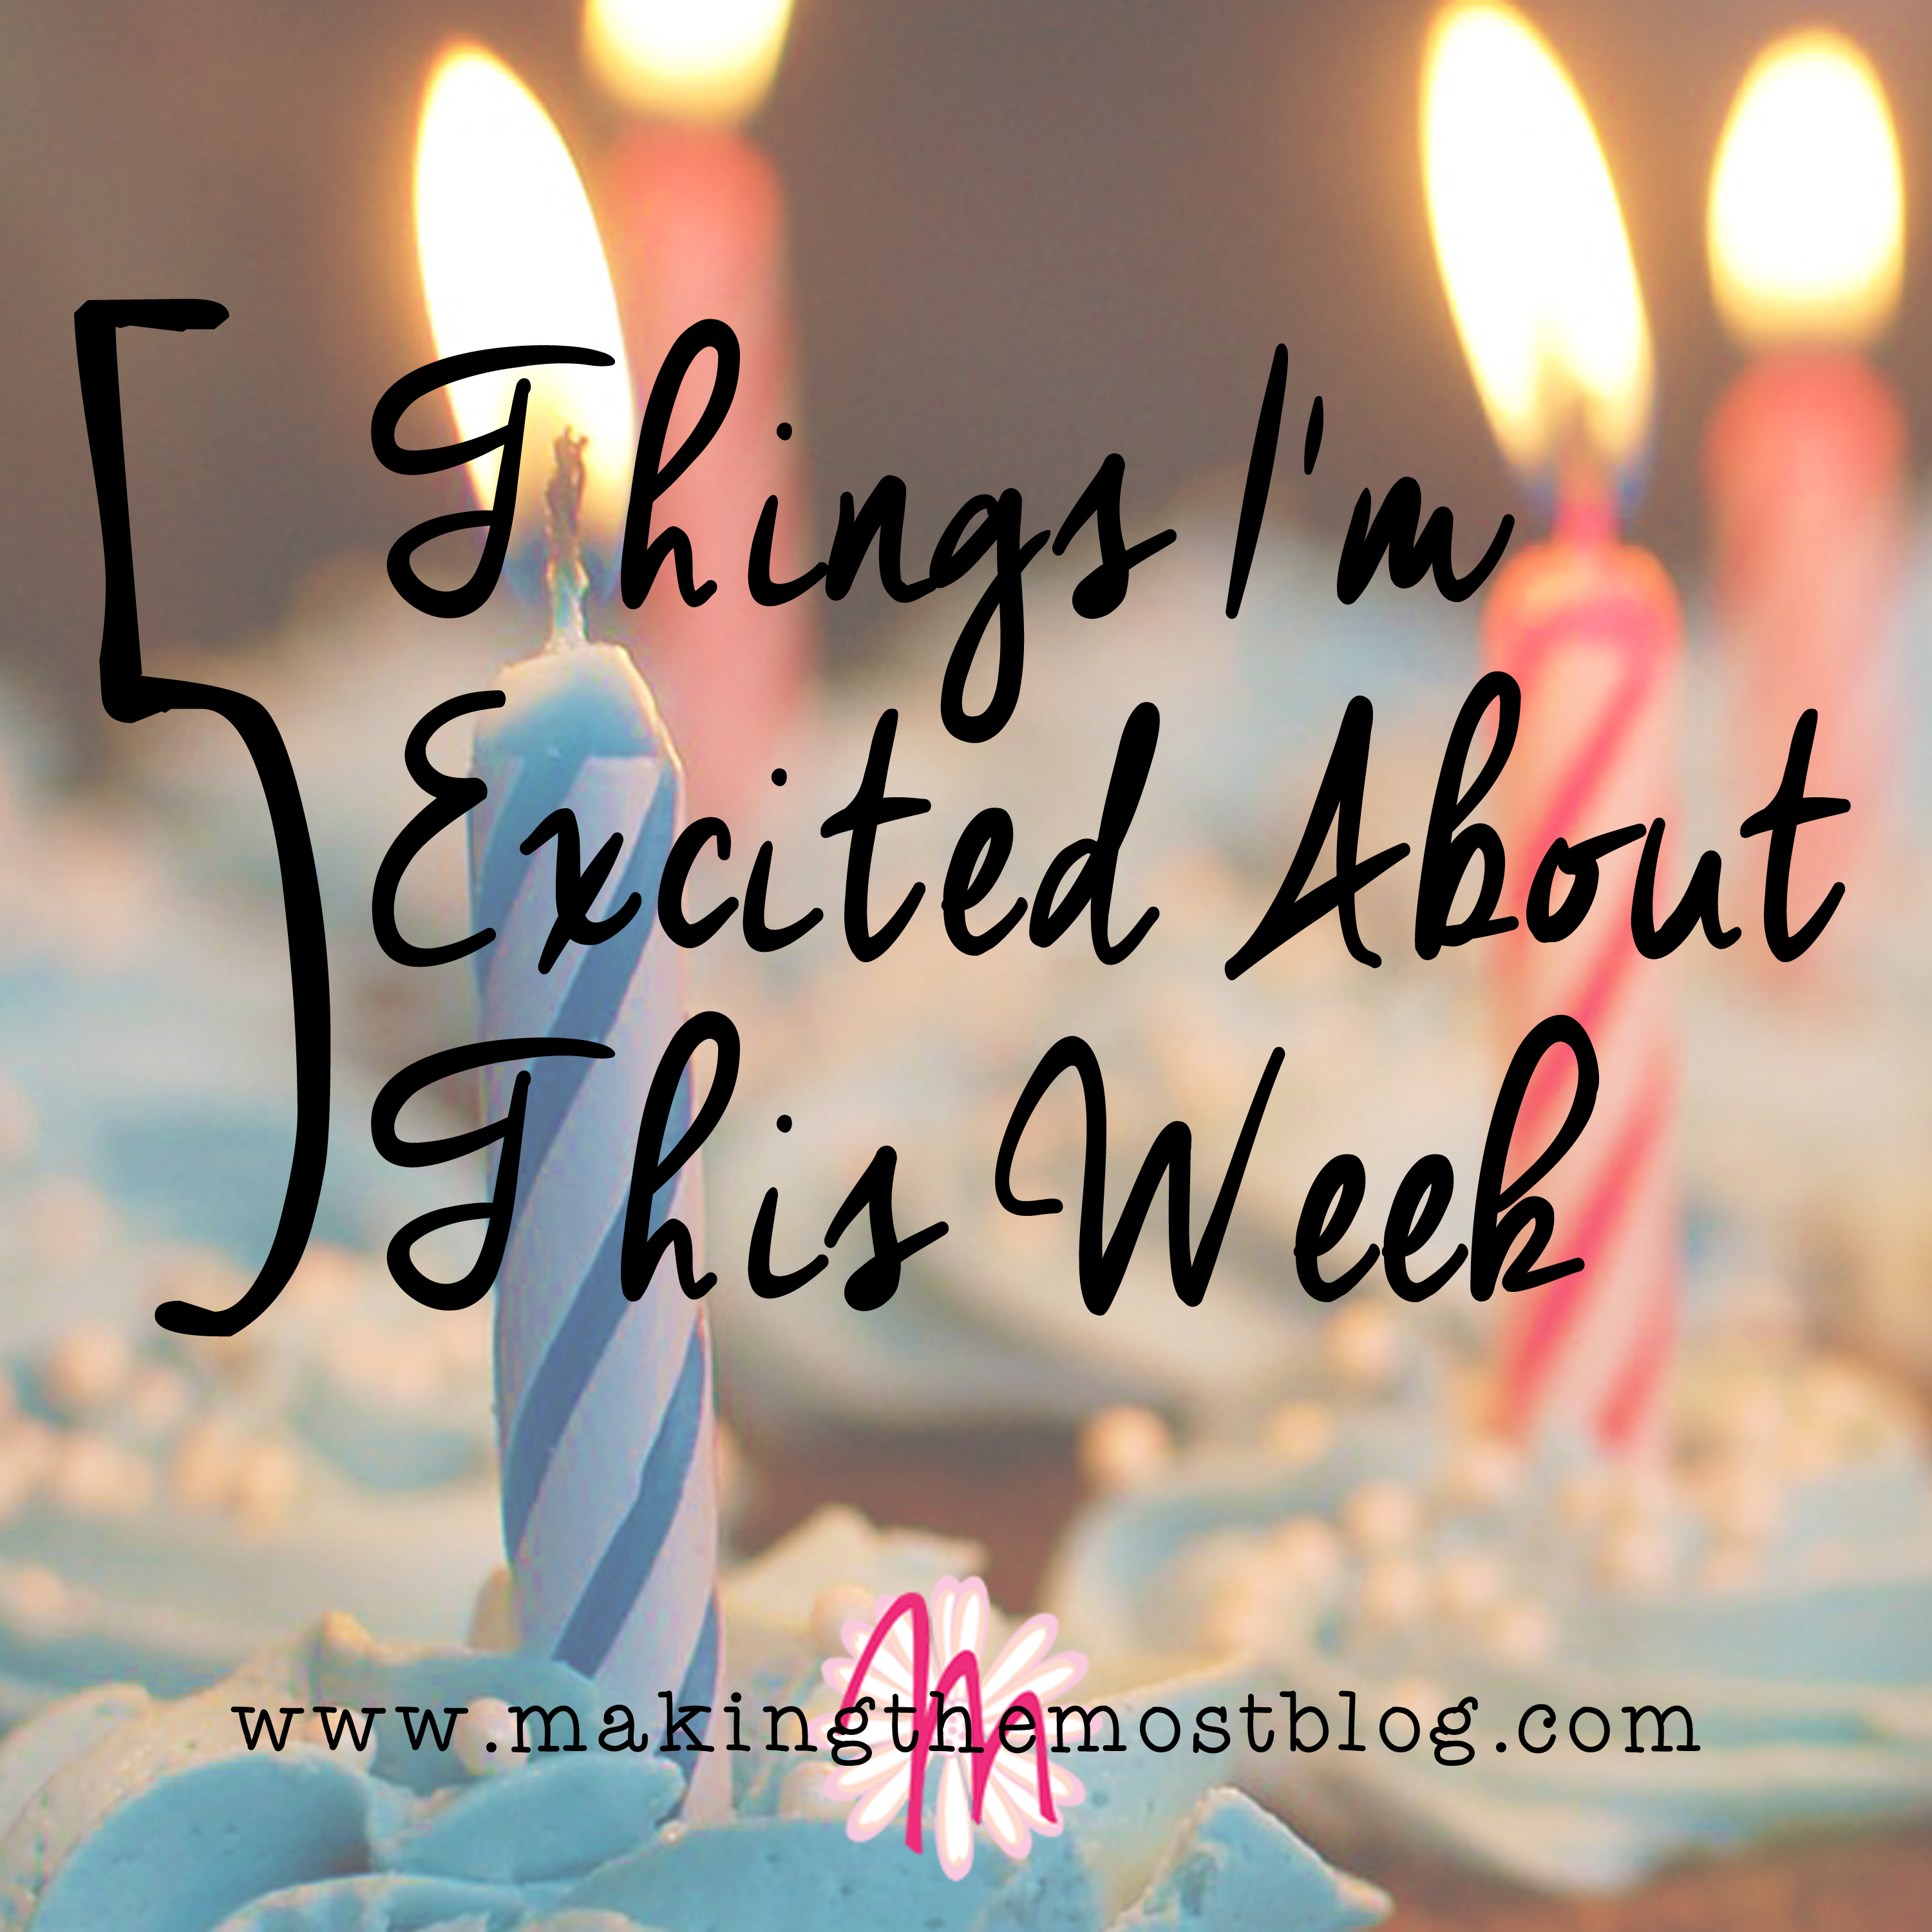 5 Things I'm Excited About This Week | Making the Most Blog